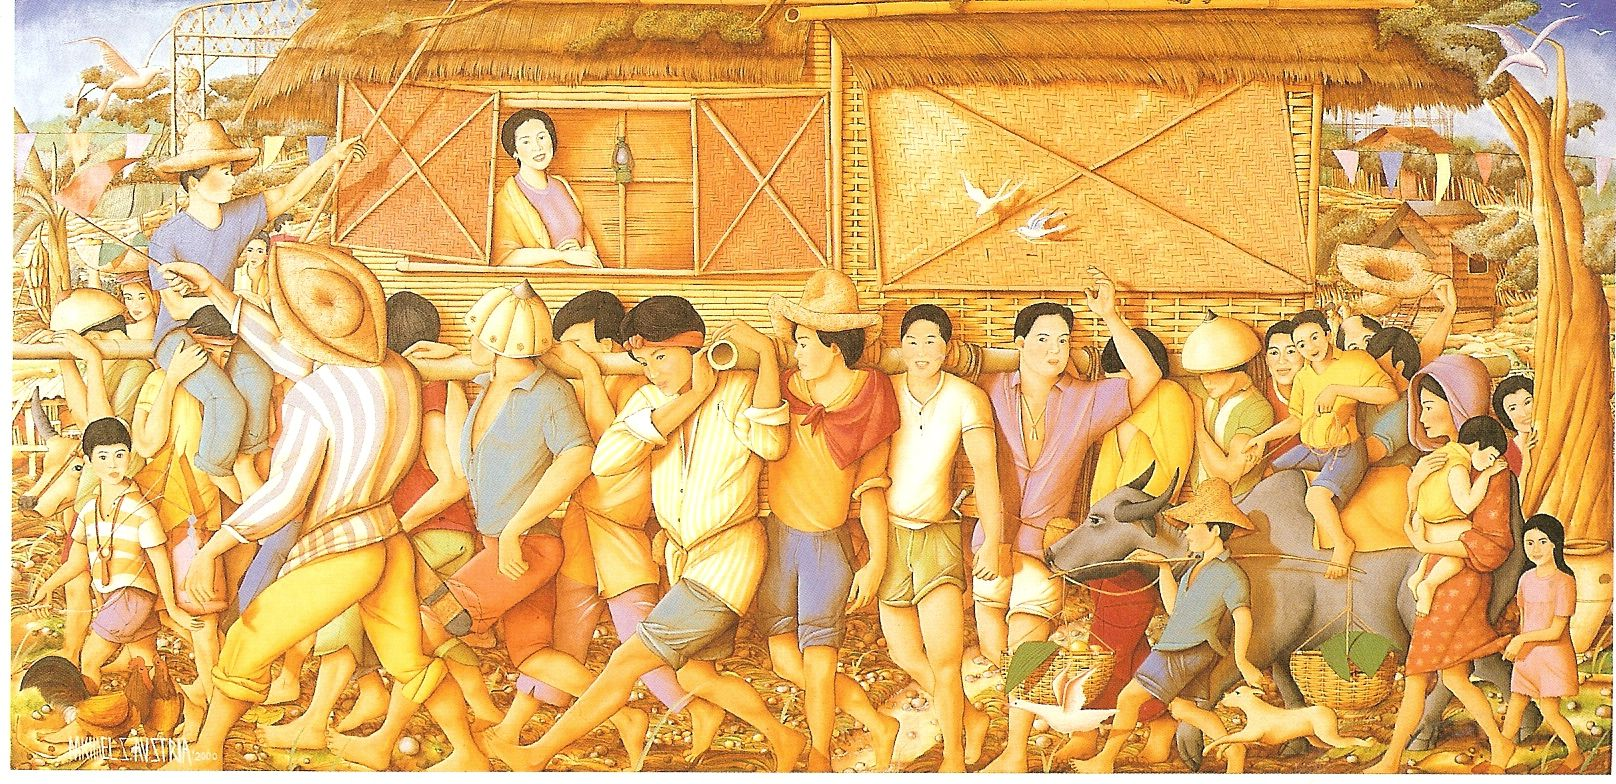 what are philippine arts during spanish regime After more than 300 years under the spanish regime, the philippines had in a  way adopted  among them are: education, religion, literature, visual arts, dance .